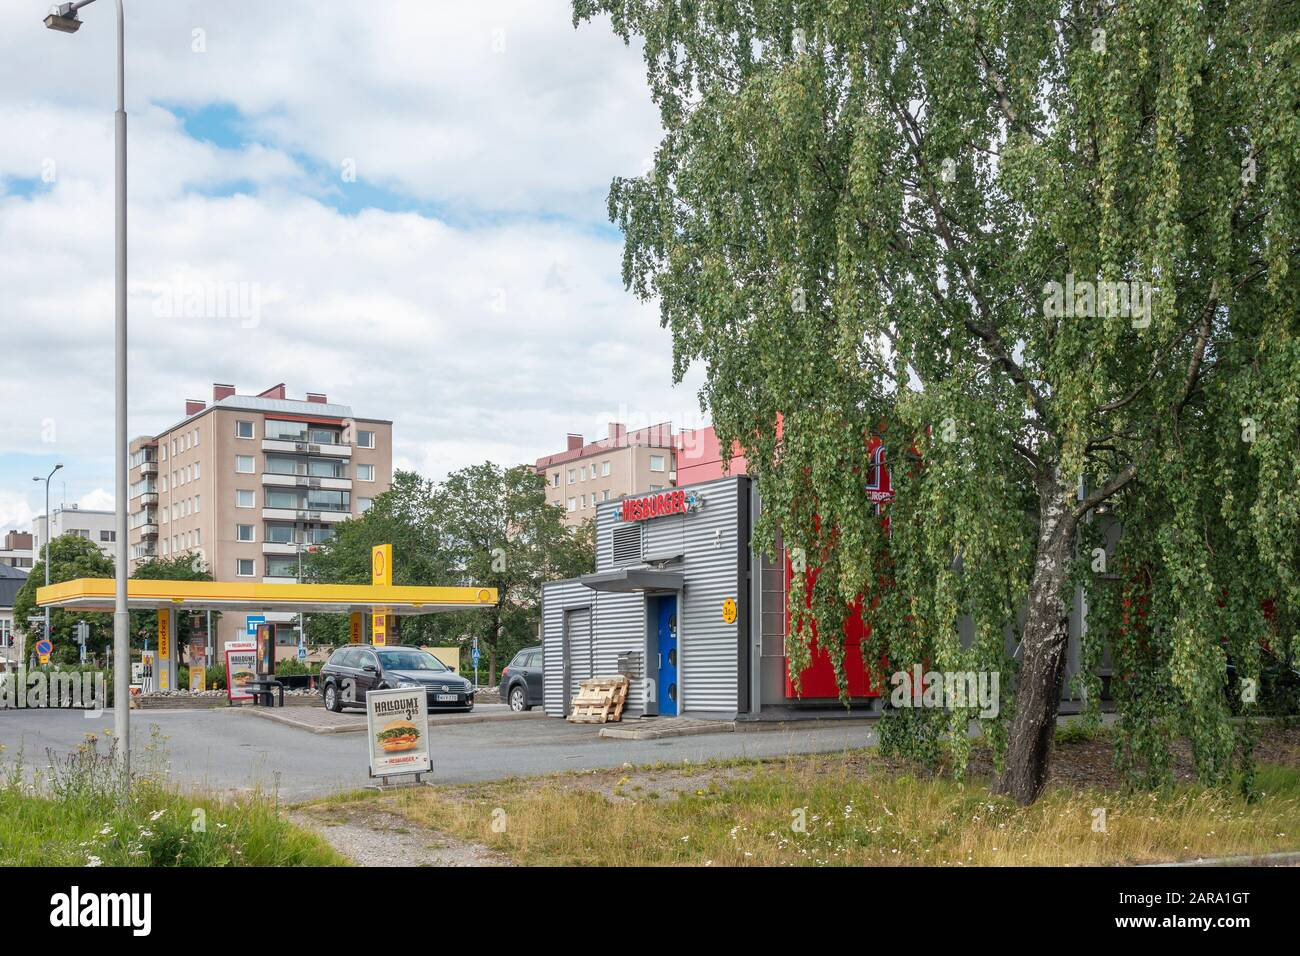 Hesburger Fast Food and Shell Gas Station in Hämeenlinna Finland Stock Photo